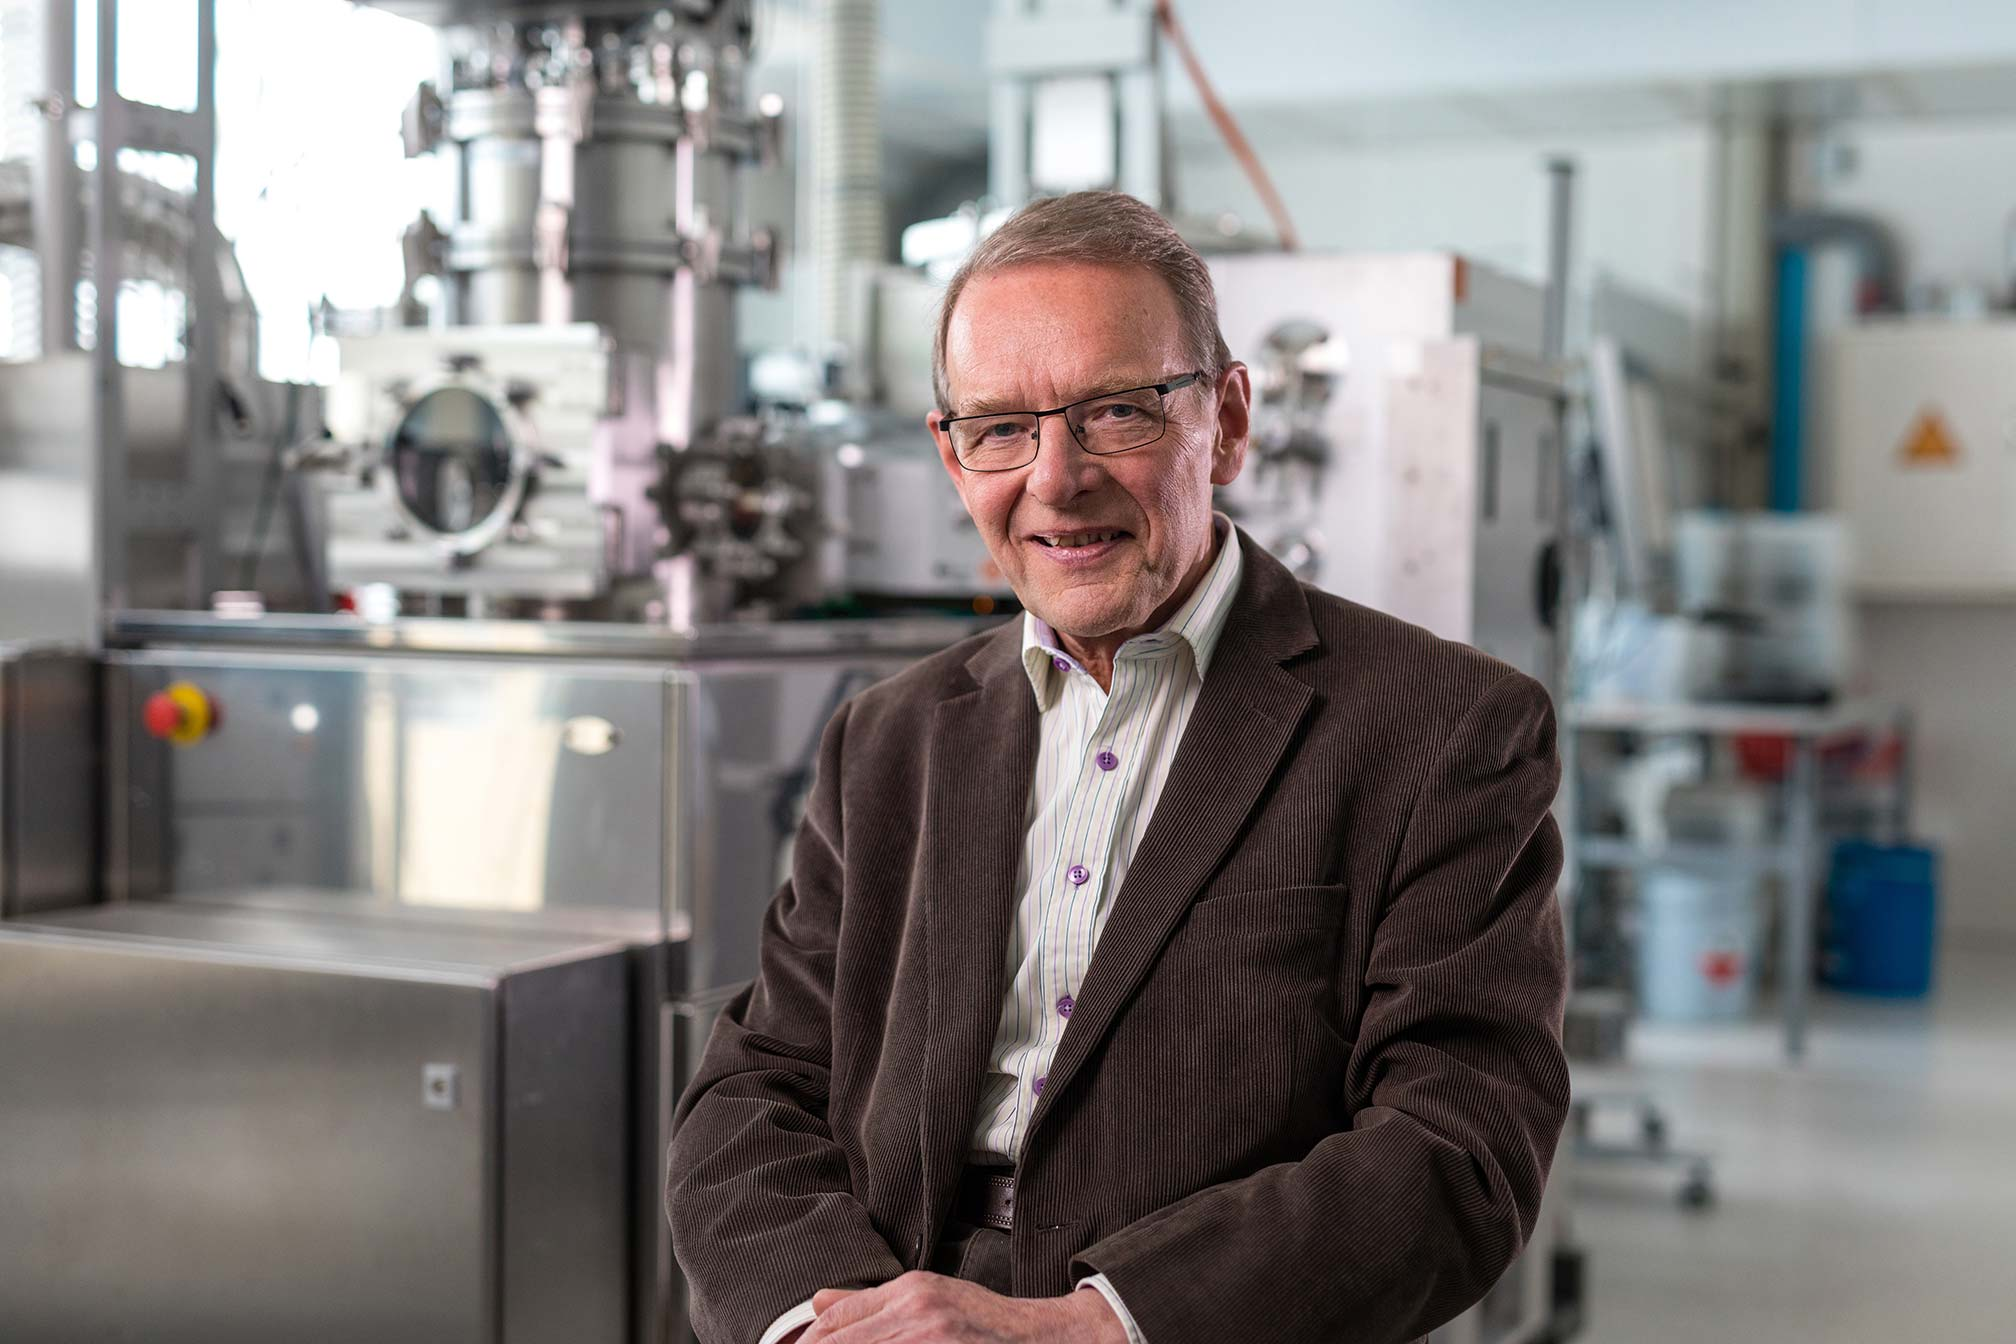 Finnish physicist, Dr. Tuomo Suntola won the highly appreciated Millennium Technology Prize in spring 2018.